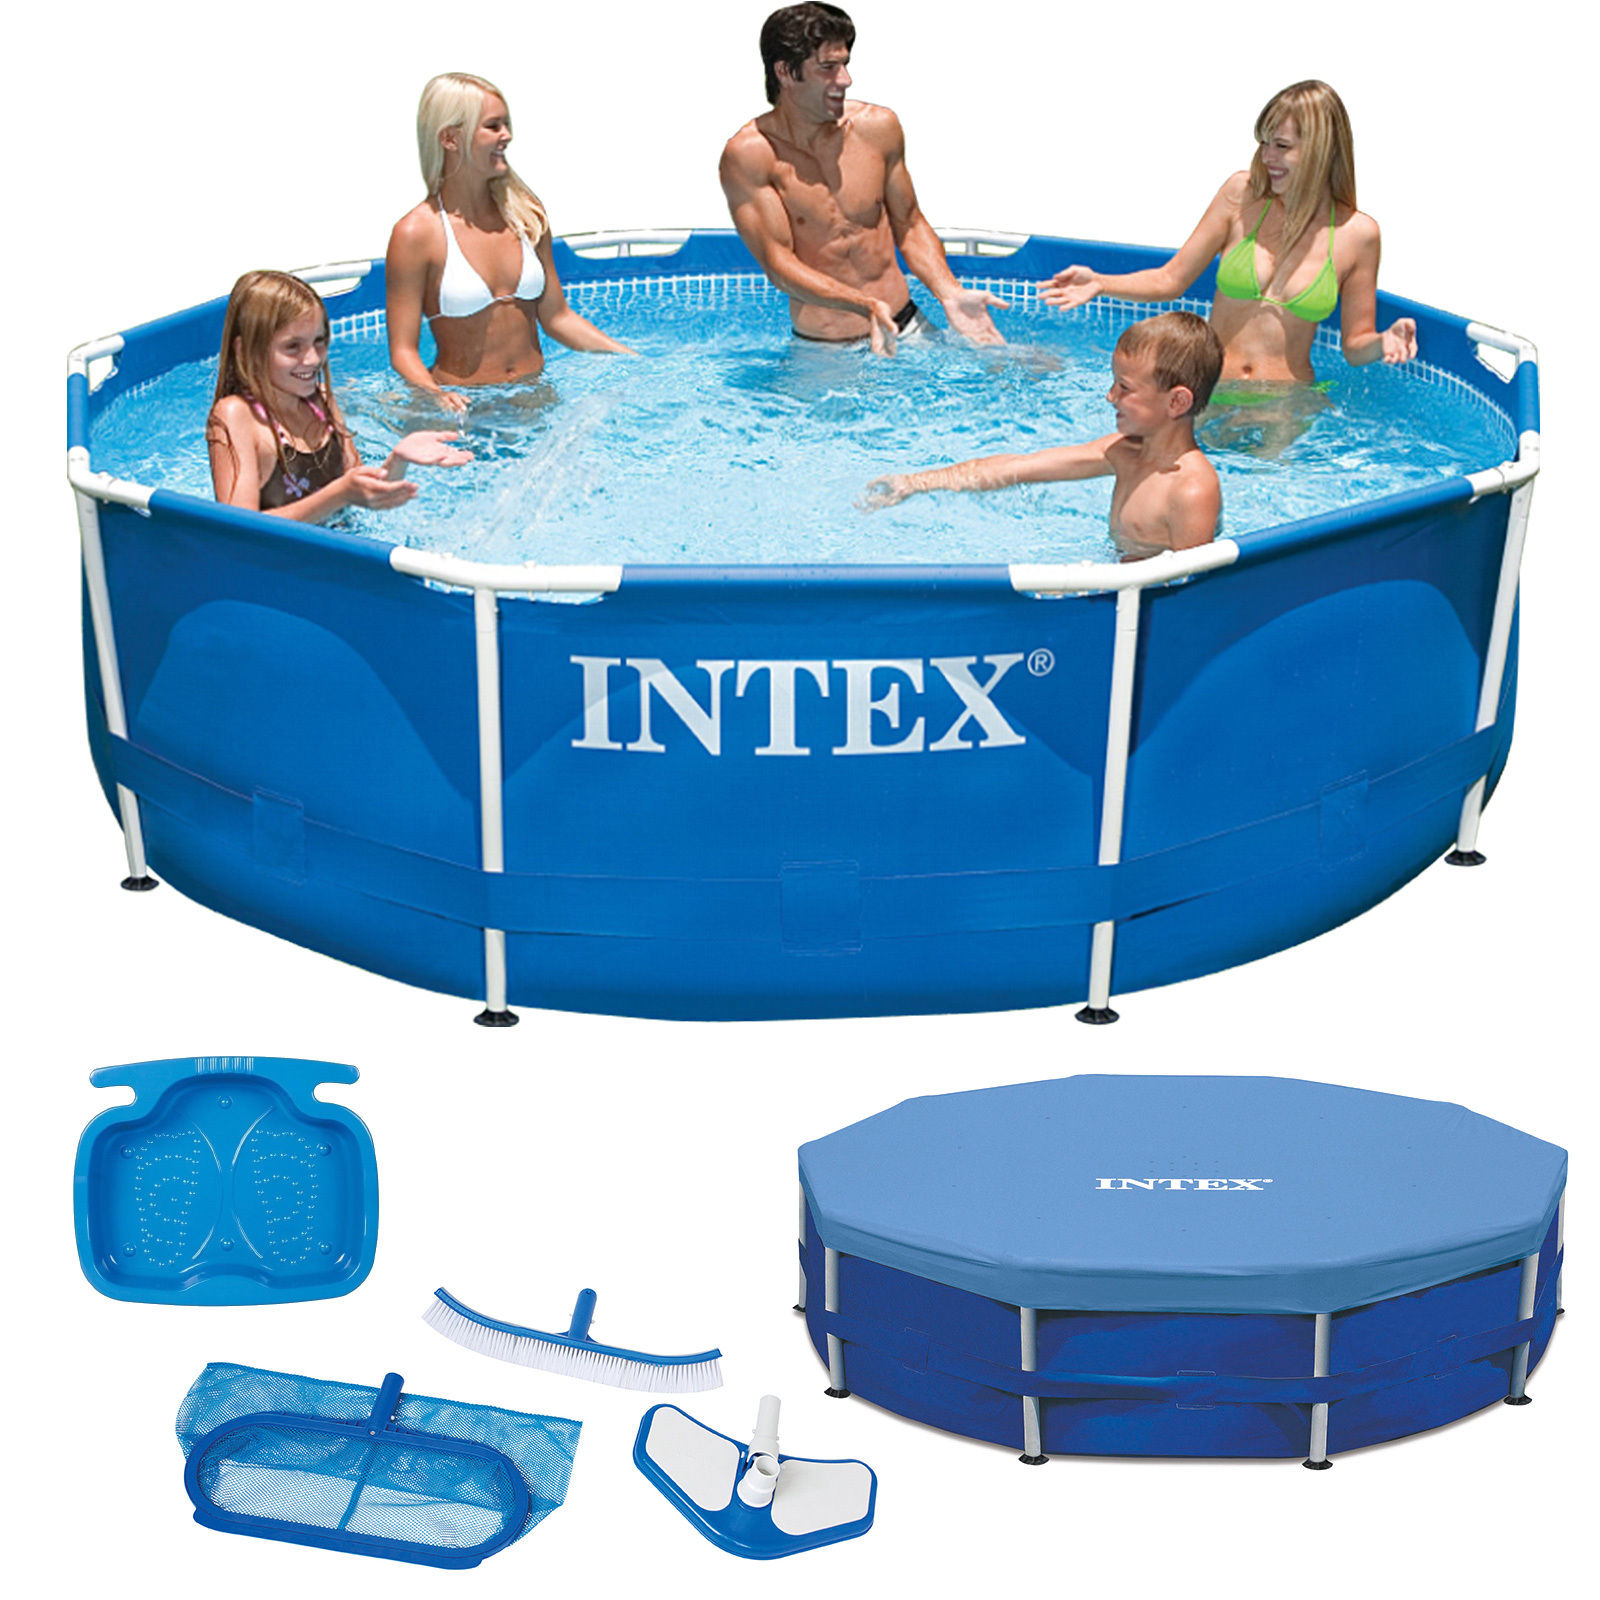 Solarplane Pool Intex 305 Details Zu Intex Metal Frame Swimming Pool Schwimmbecken Schwimmbad 305 Cm 457 Cm